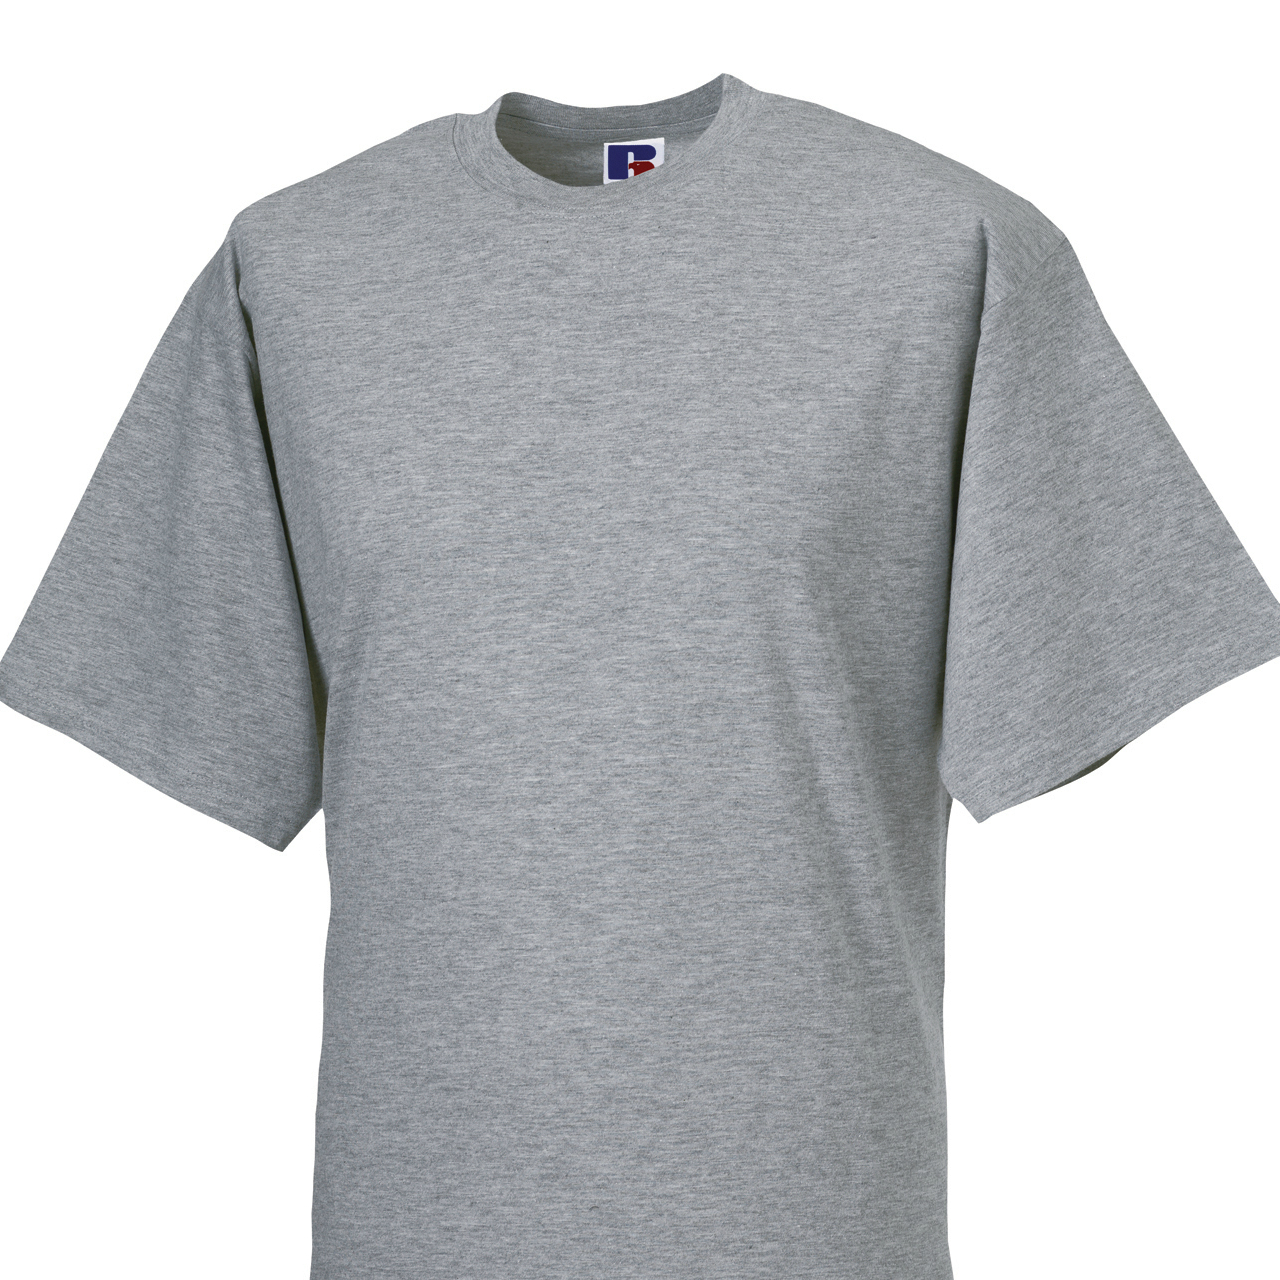 Light Oxford Grey Printed T-Shirts from Jageto Embroidery and Print in Braintree, Essex UK